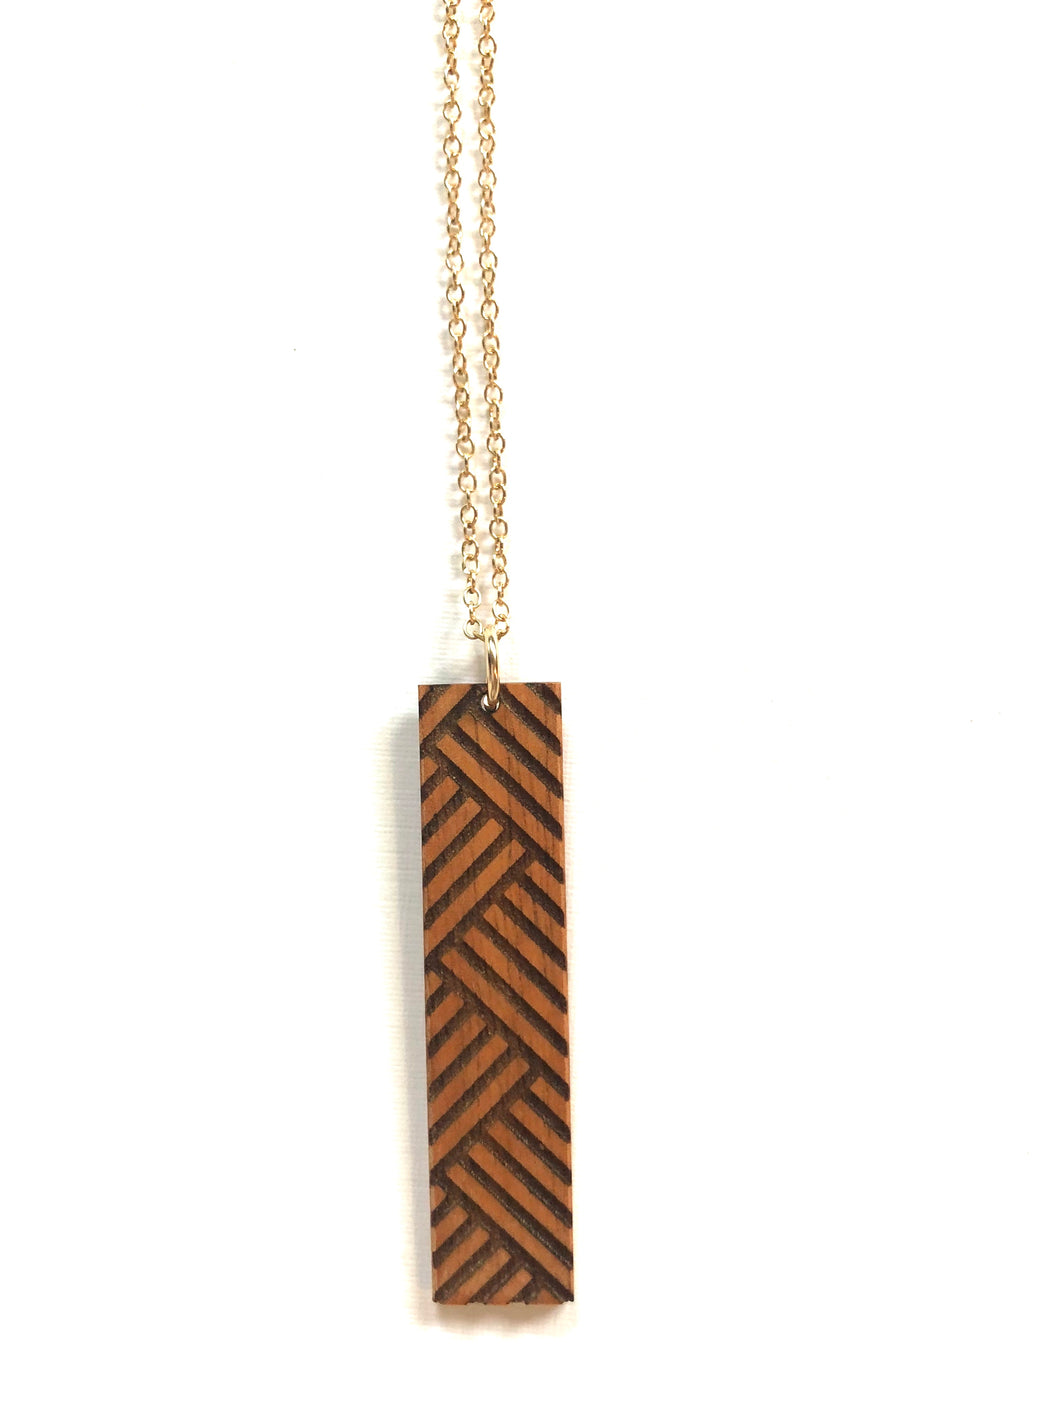 Lauhala Hawaiian Koa Wood w/ 14k Gold Filled Necklace